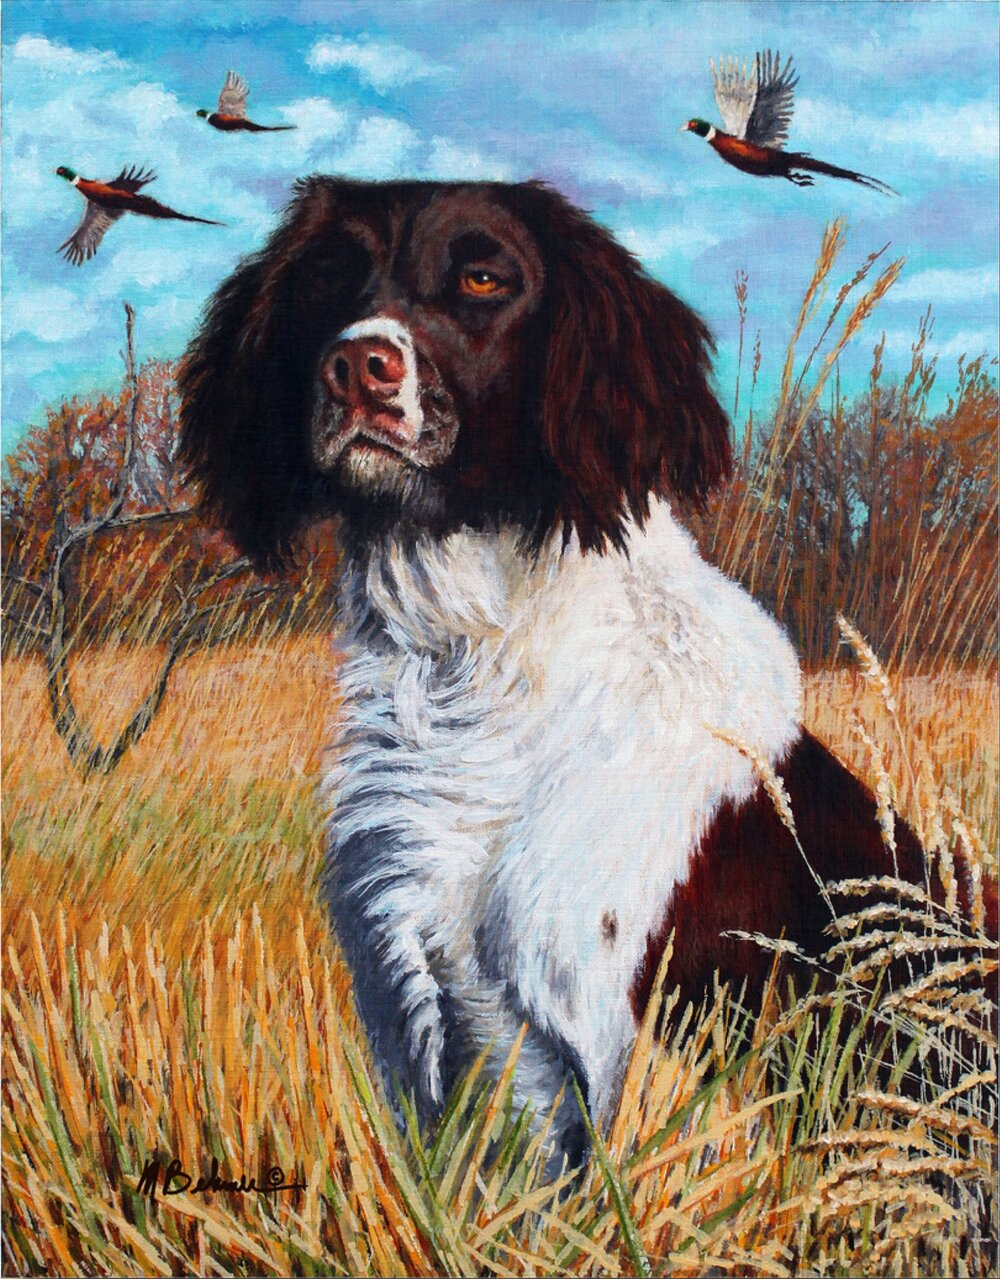 """Ivanhoe's Red Lion in The Field"" - Springer Spaniel"